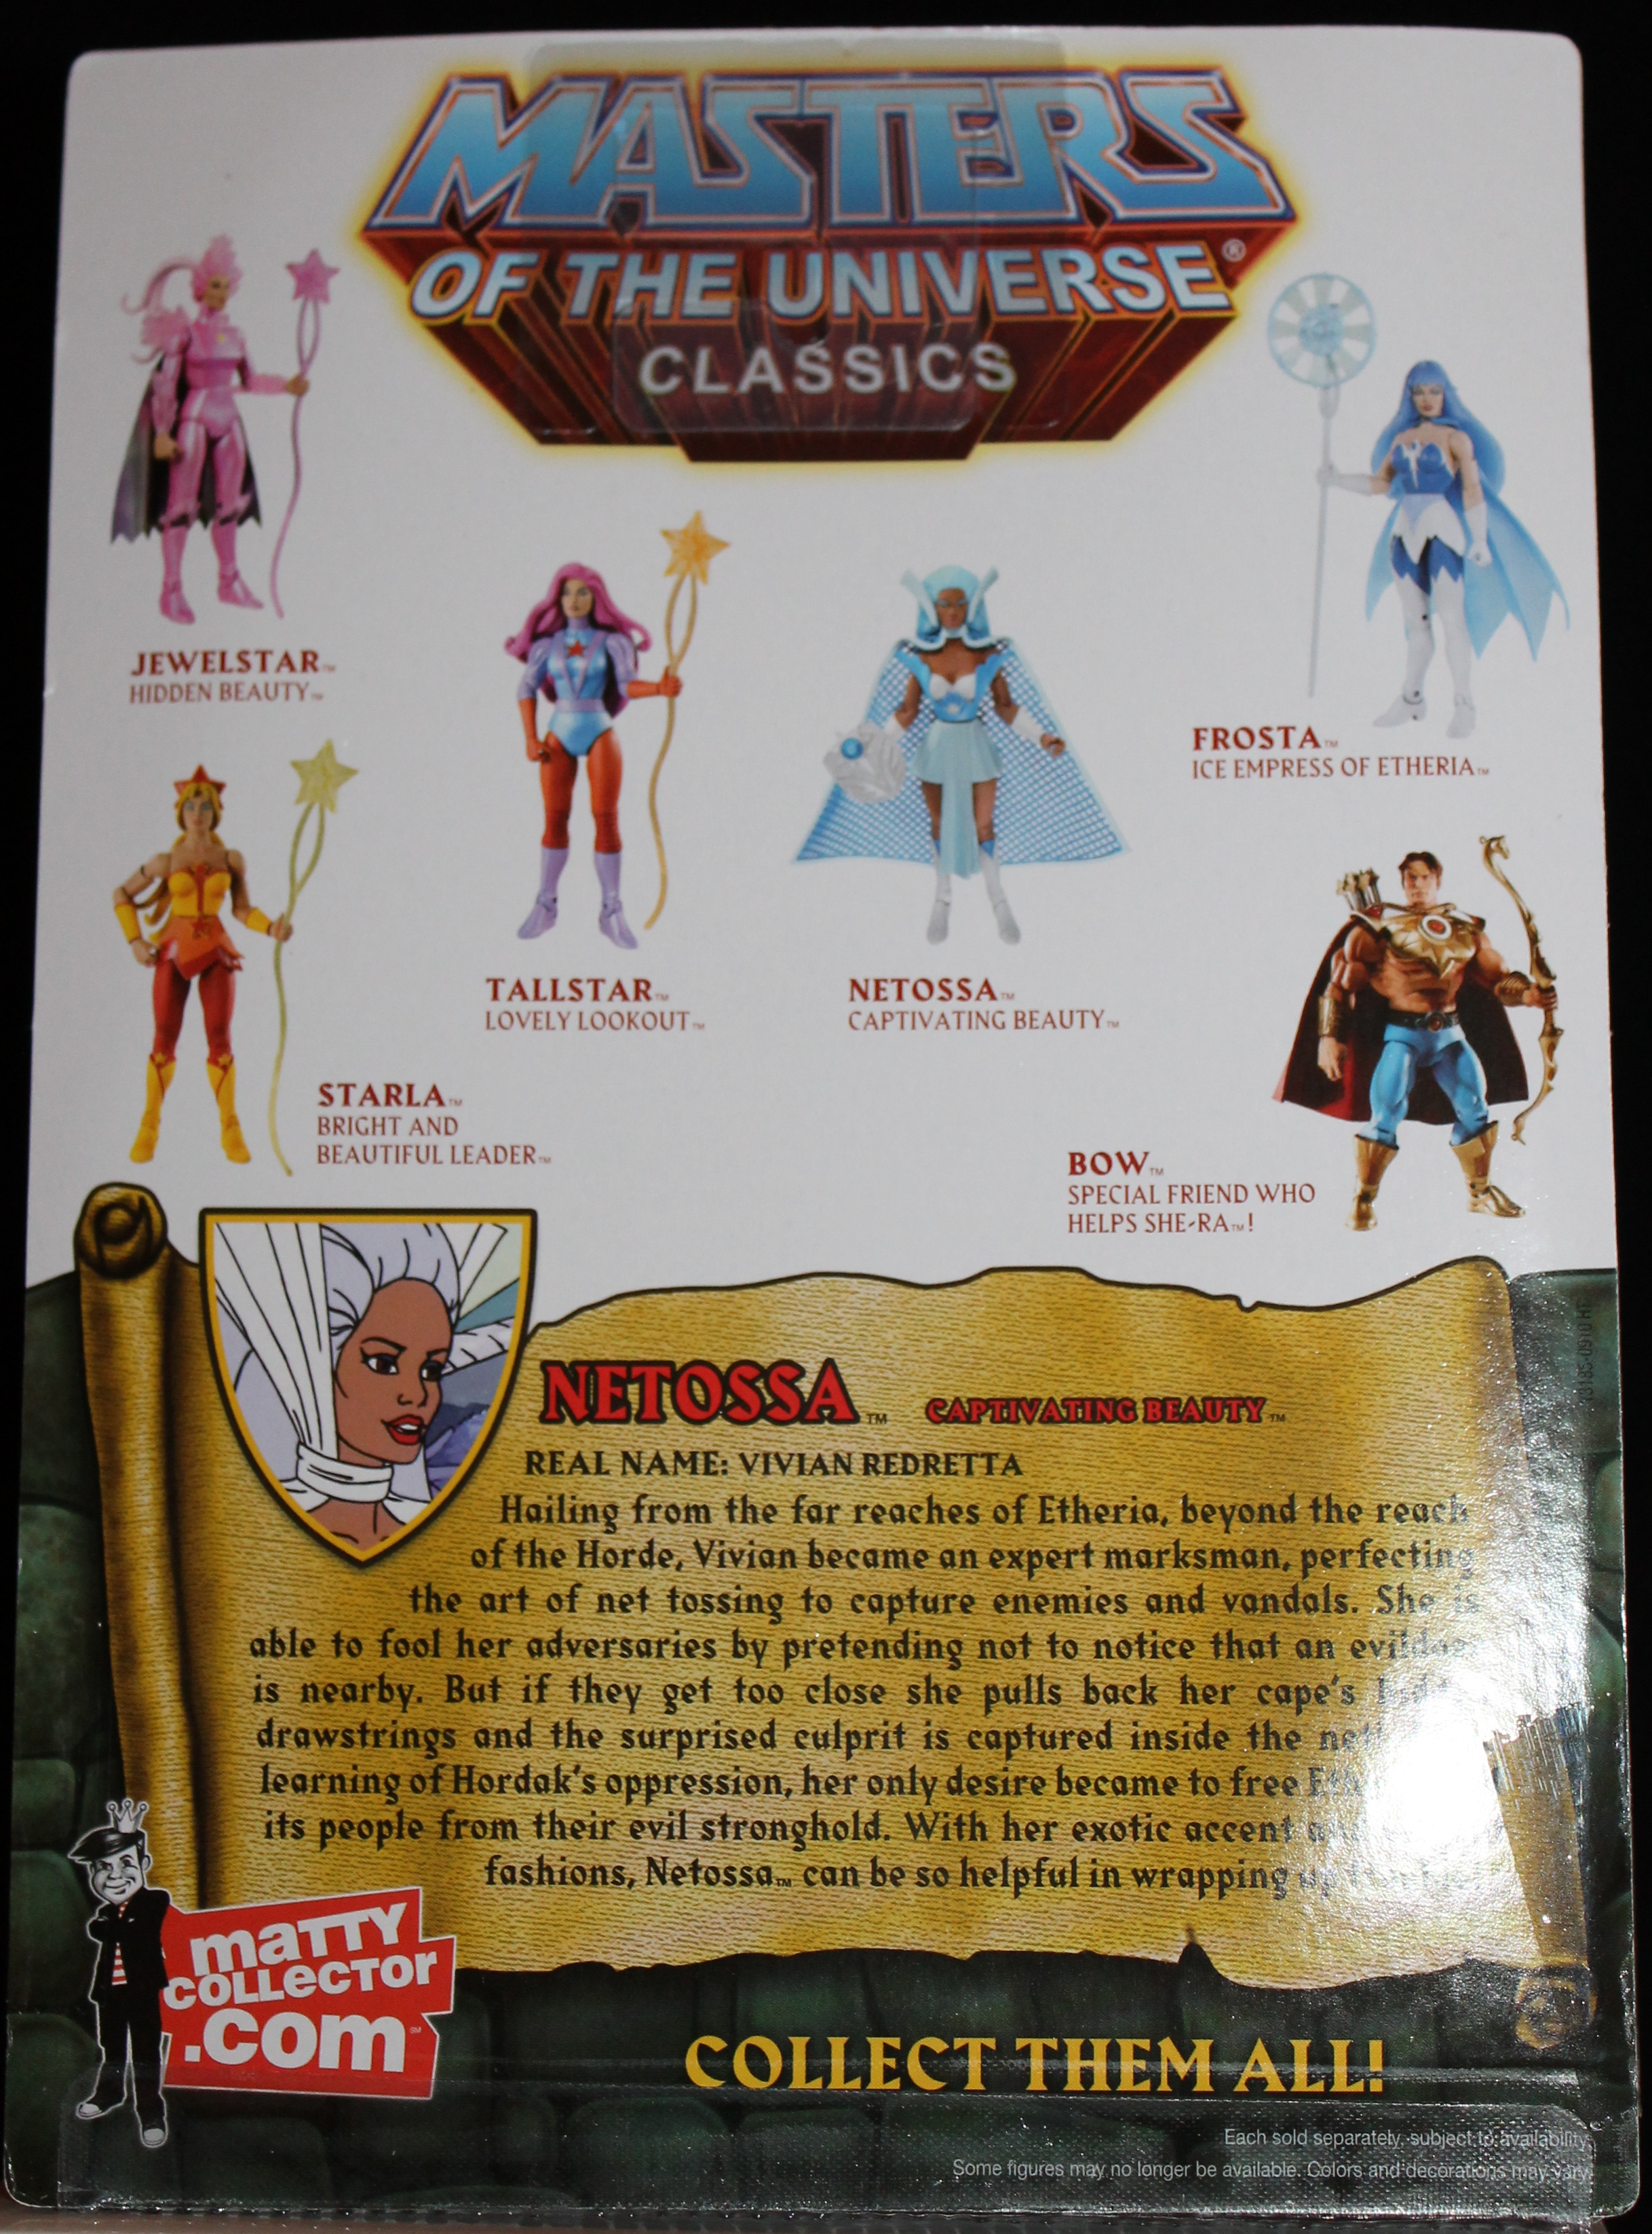 014 Masters of the Universe Classics: Jan  Netossa